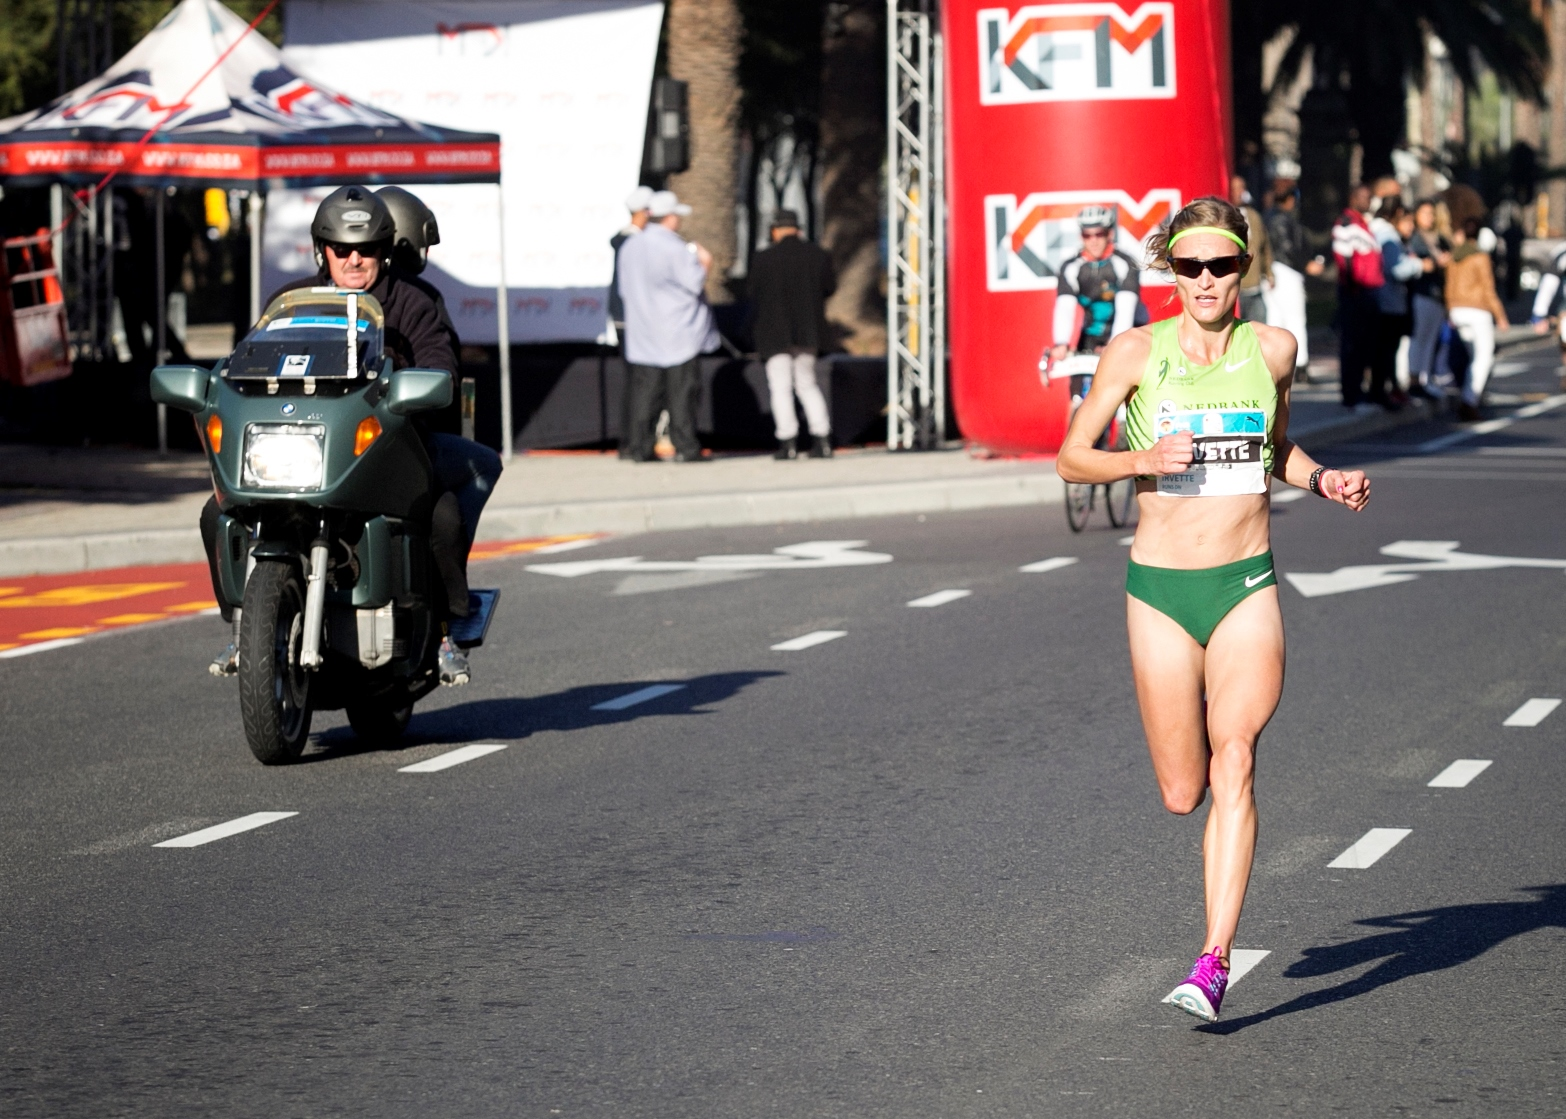 Fresh off of her third place finish at the Two Oceans Marathon where she made Ultra debut, Irvette van Zyl has confirmed her entry into the 2019 running of the FNB Cape Town 12 ONERUN on Sunday, 19 May.   Seen here:  Irvette van Zyl  in action during the 2016 FNB Cape Town 12 ONERUN where she claimed gold in 39 minutes 40 seconds.  Photo Credit:  Mark Sampson